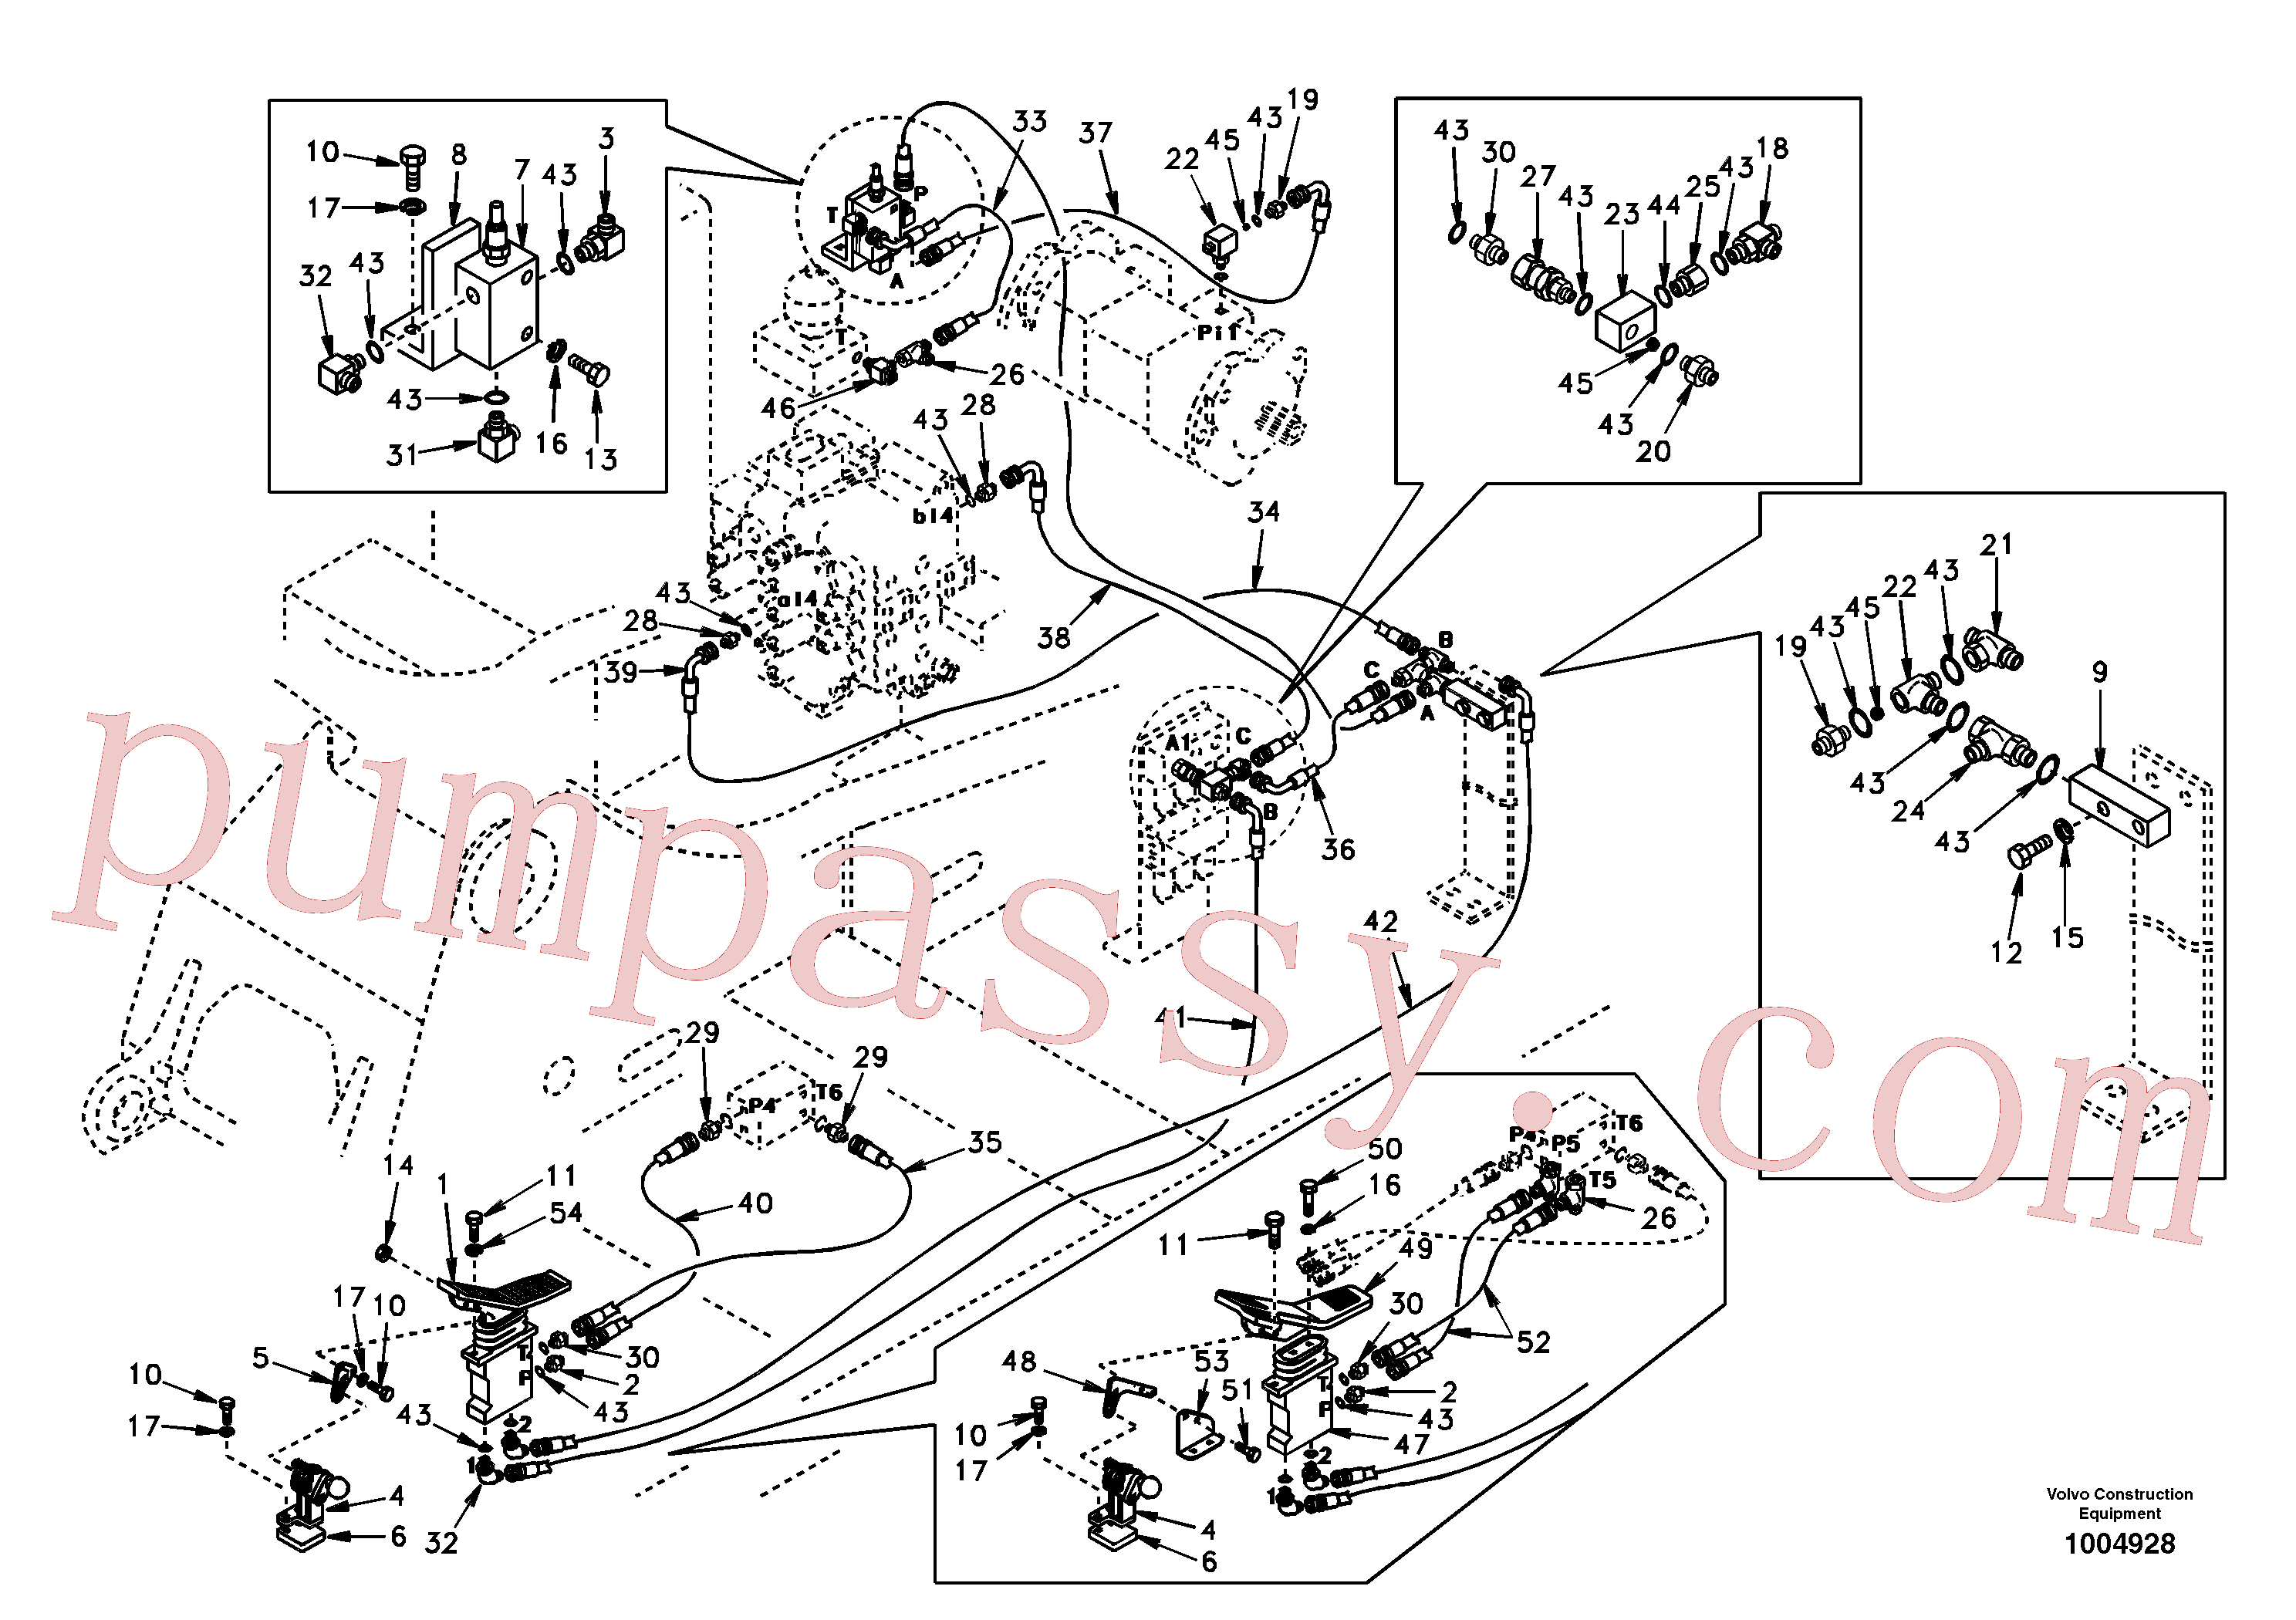 SA9451-02345 for Volvo Working hydraulic, hammer and shear for 1st pump flow(1004928 assembly)